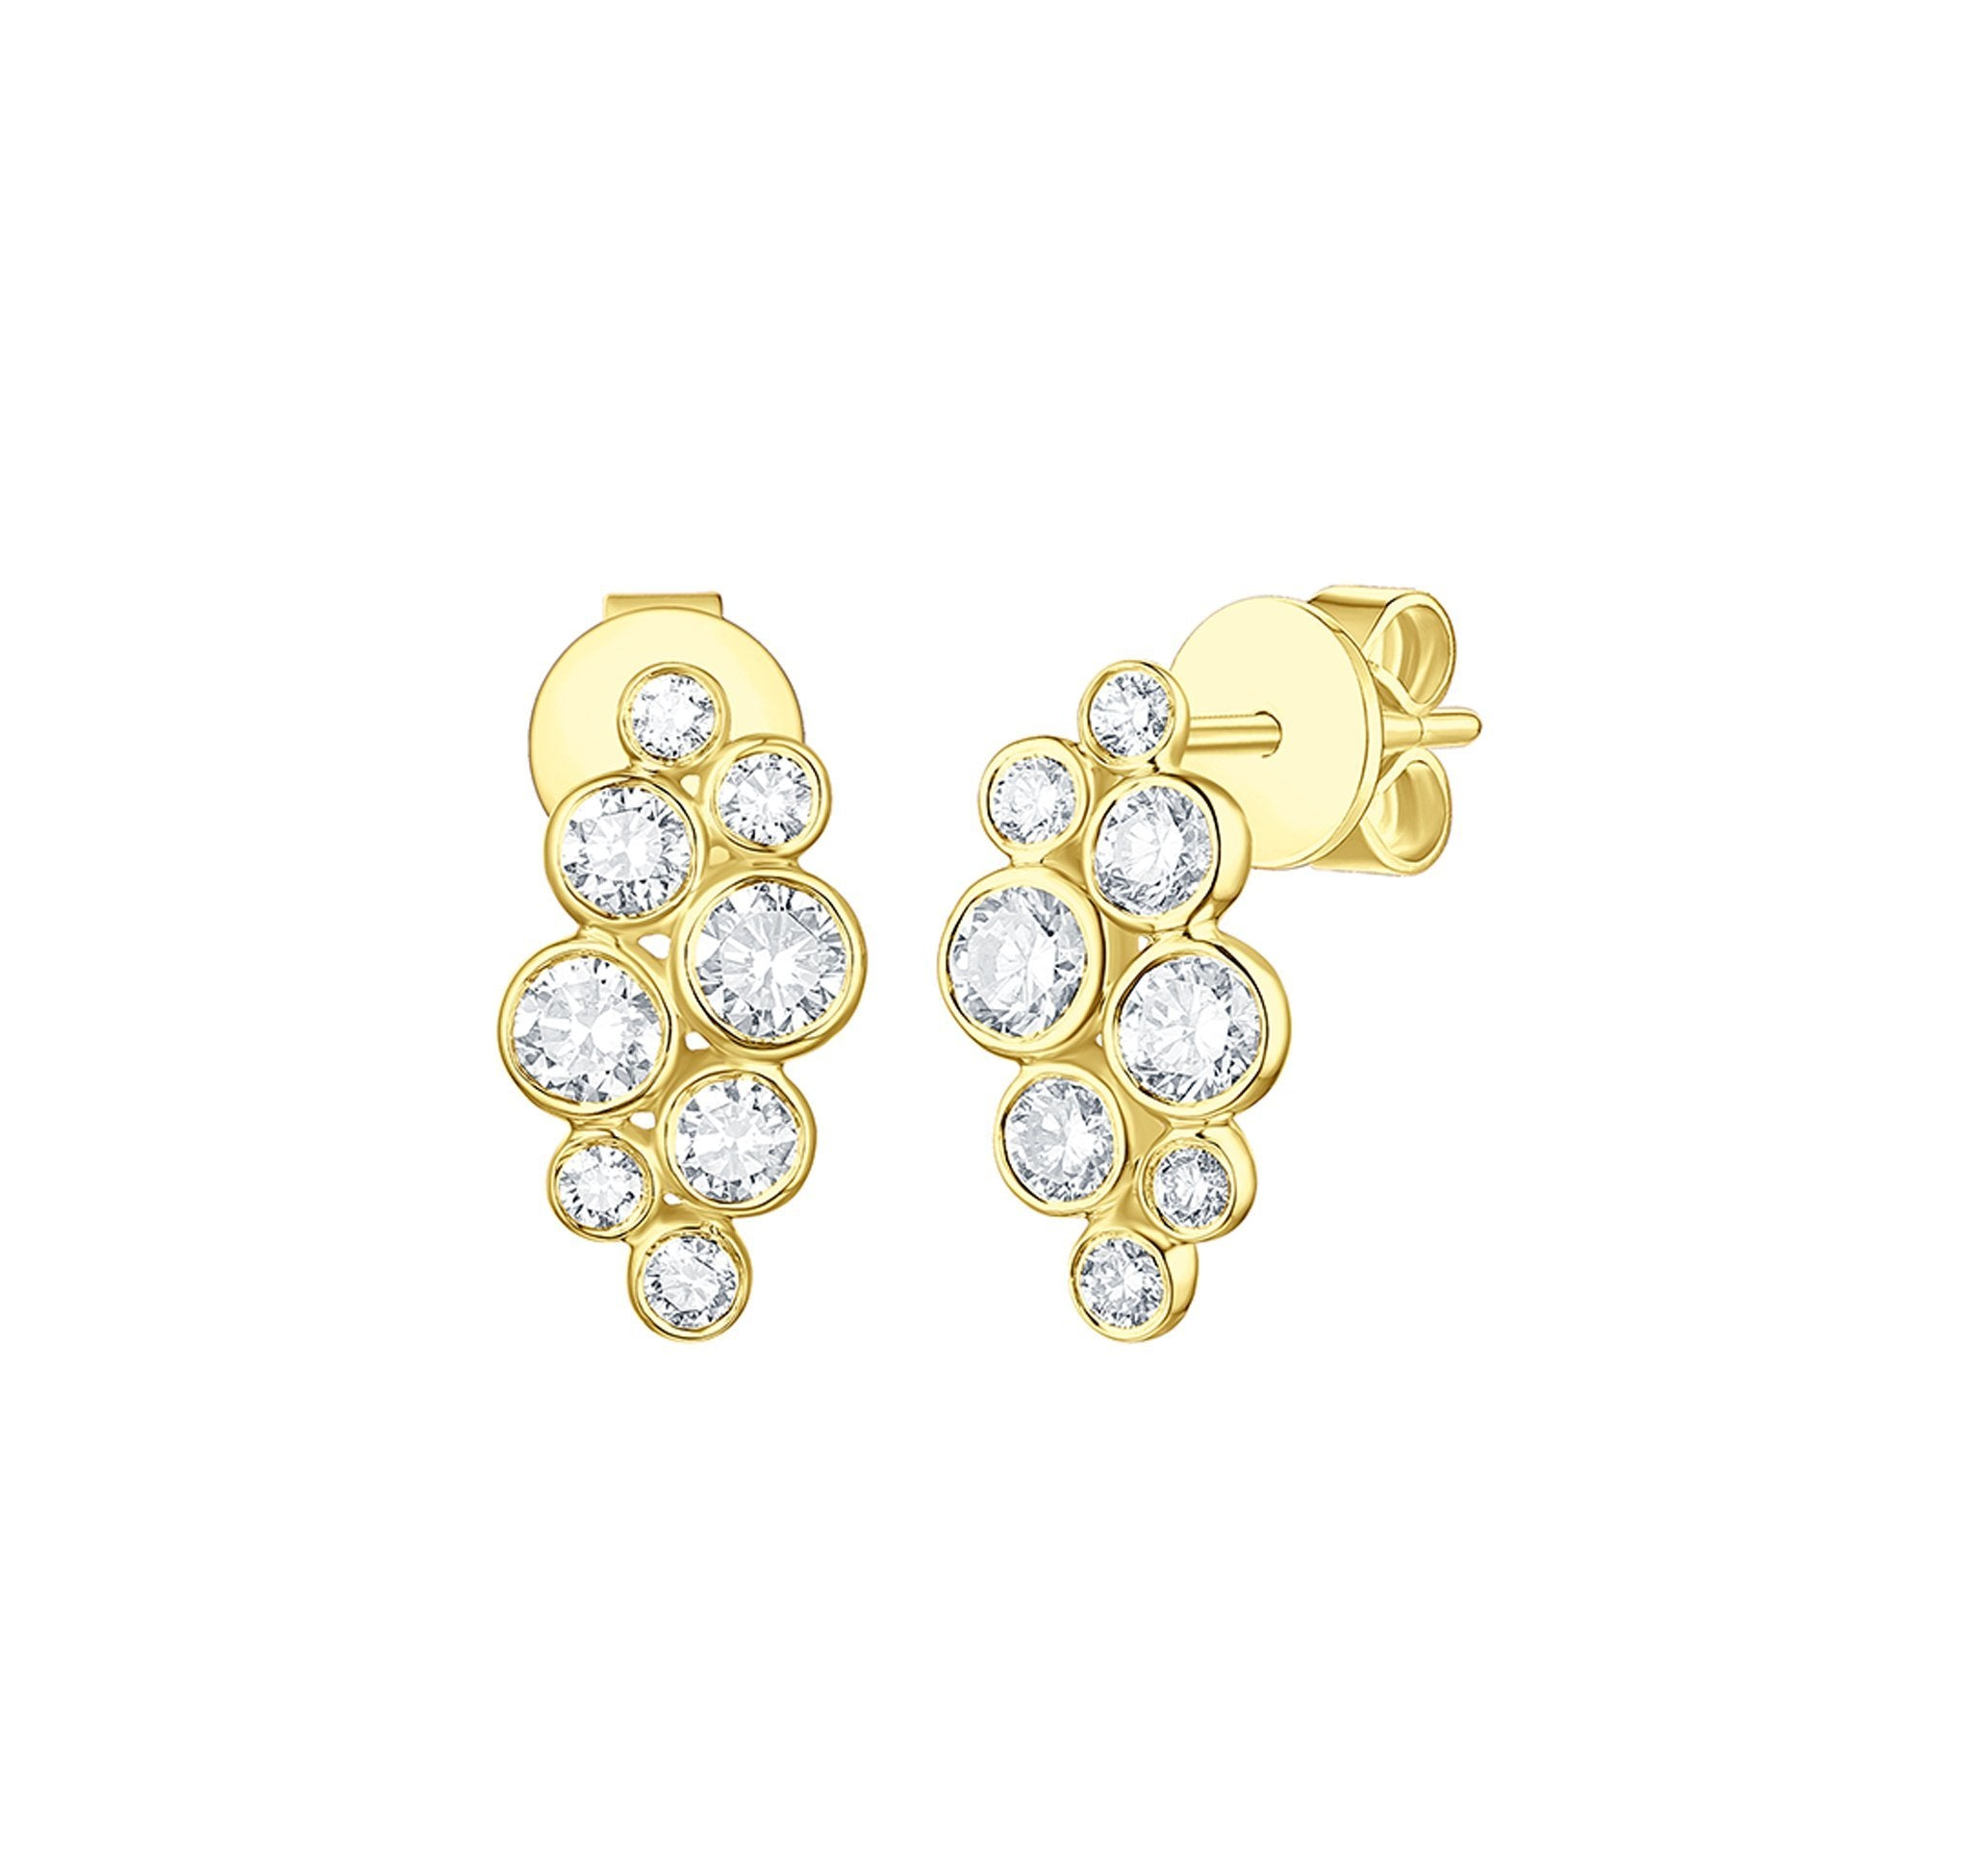 Bubbly Lab Grown Diamonds Earrings